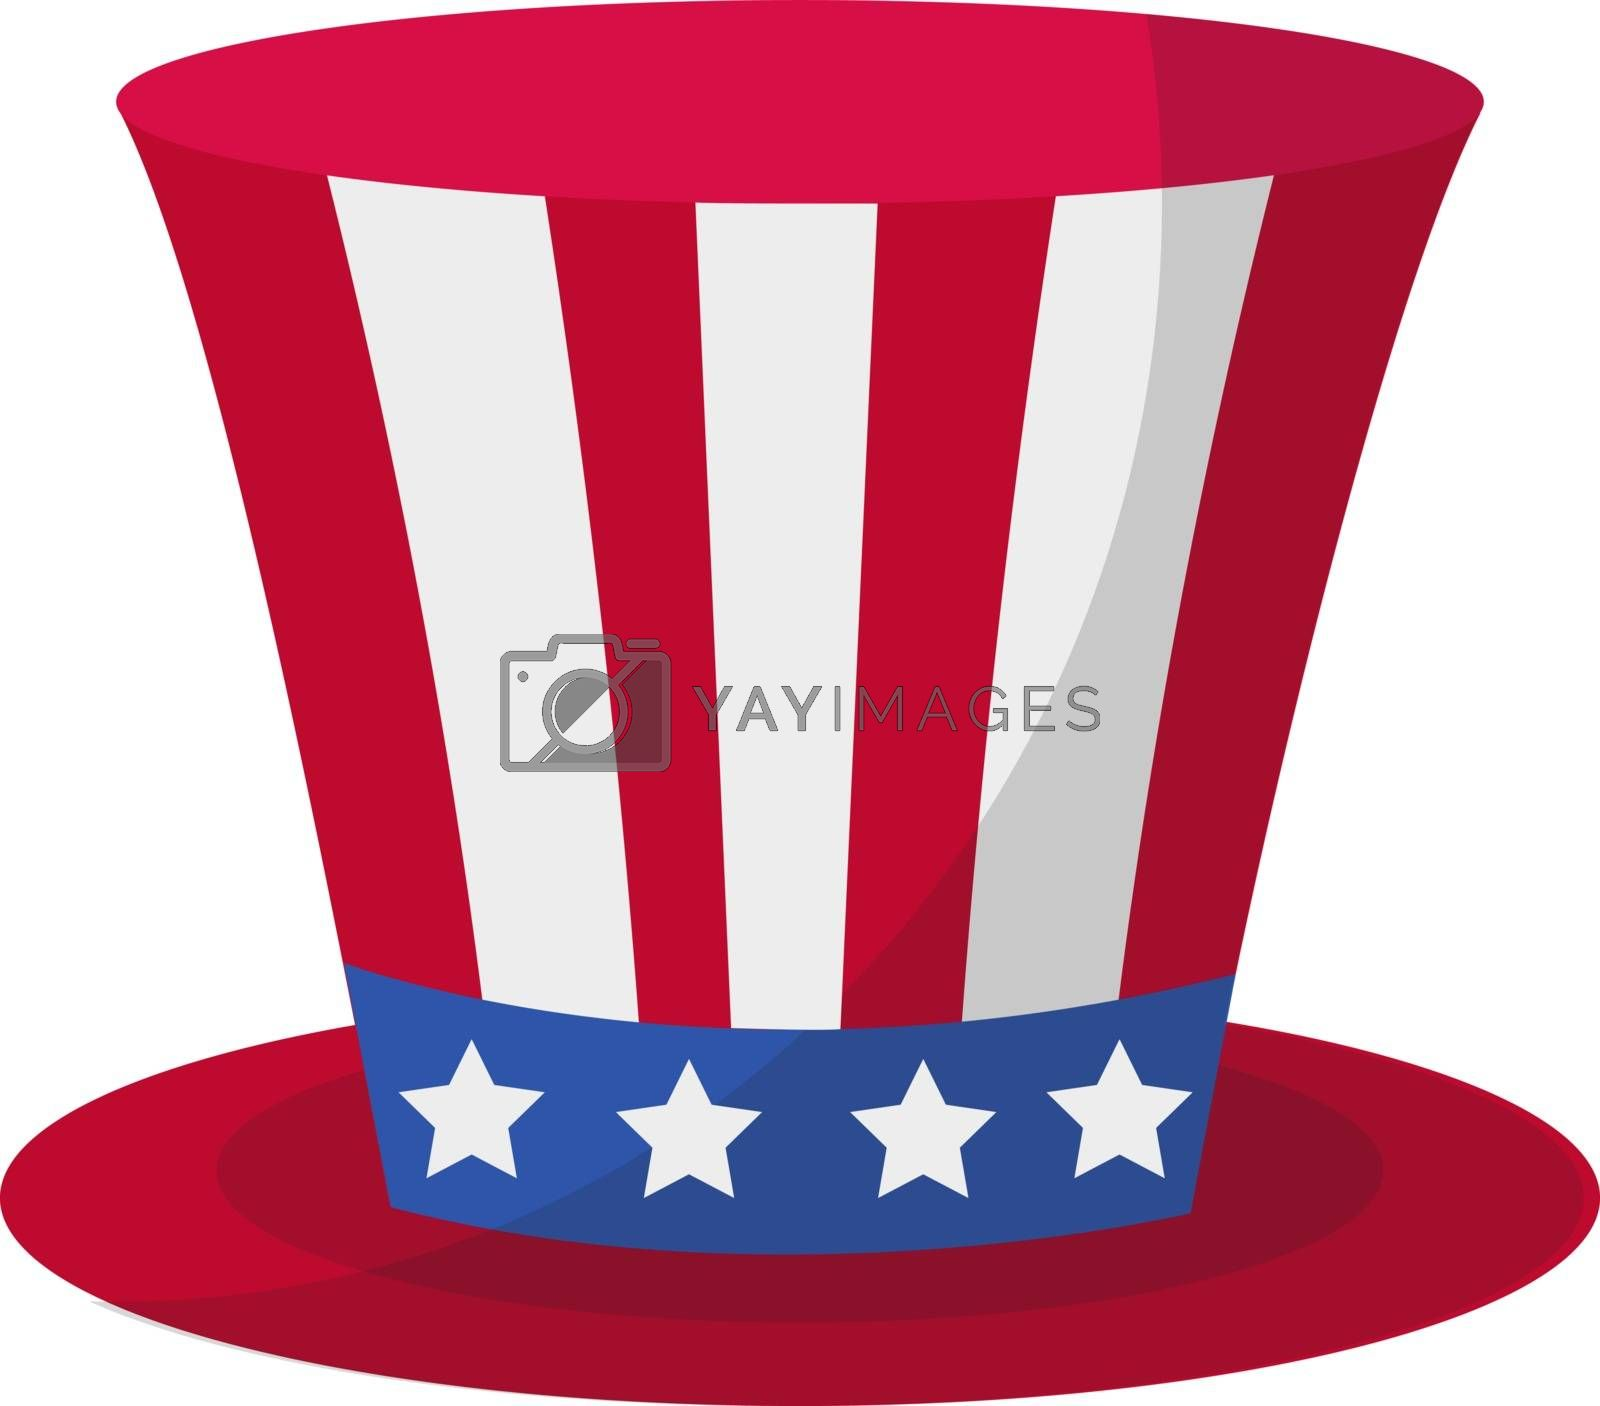 Cylinder hat icon flat style. 4th july concept. Isolated on white background. Vector illustration